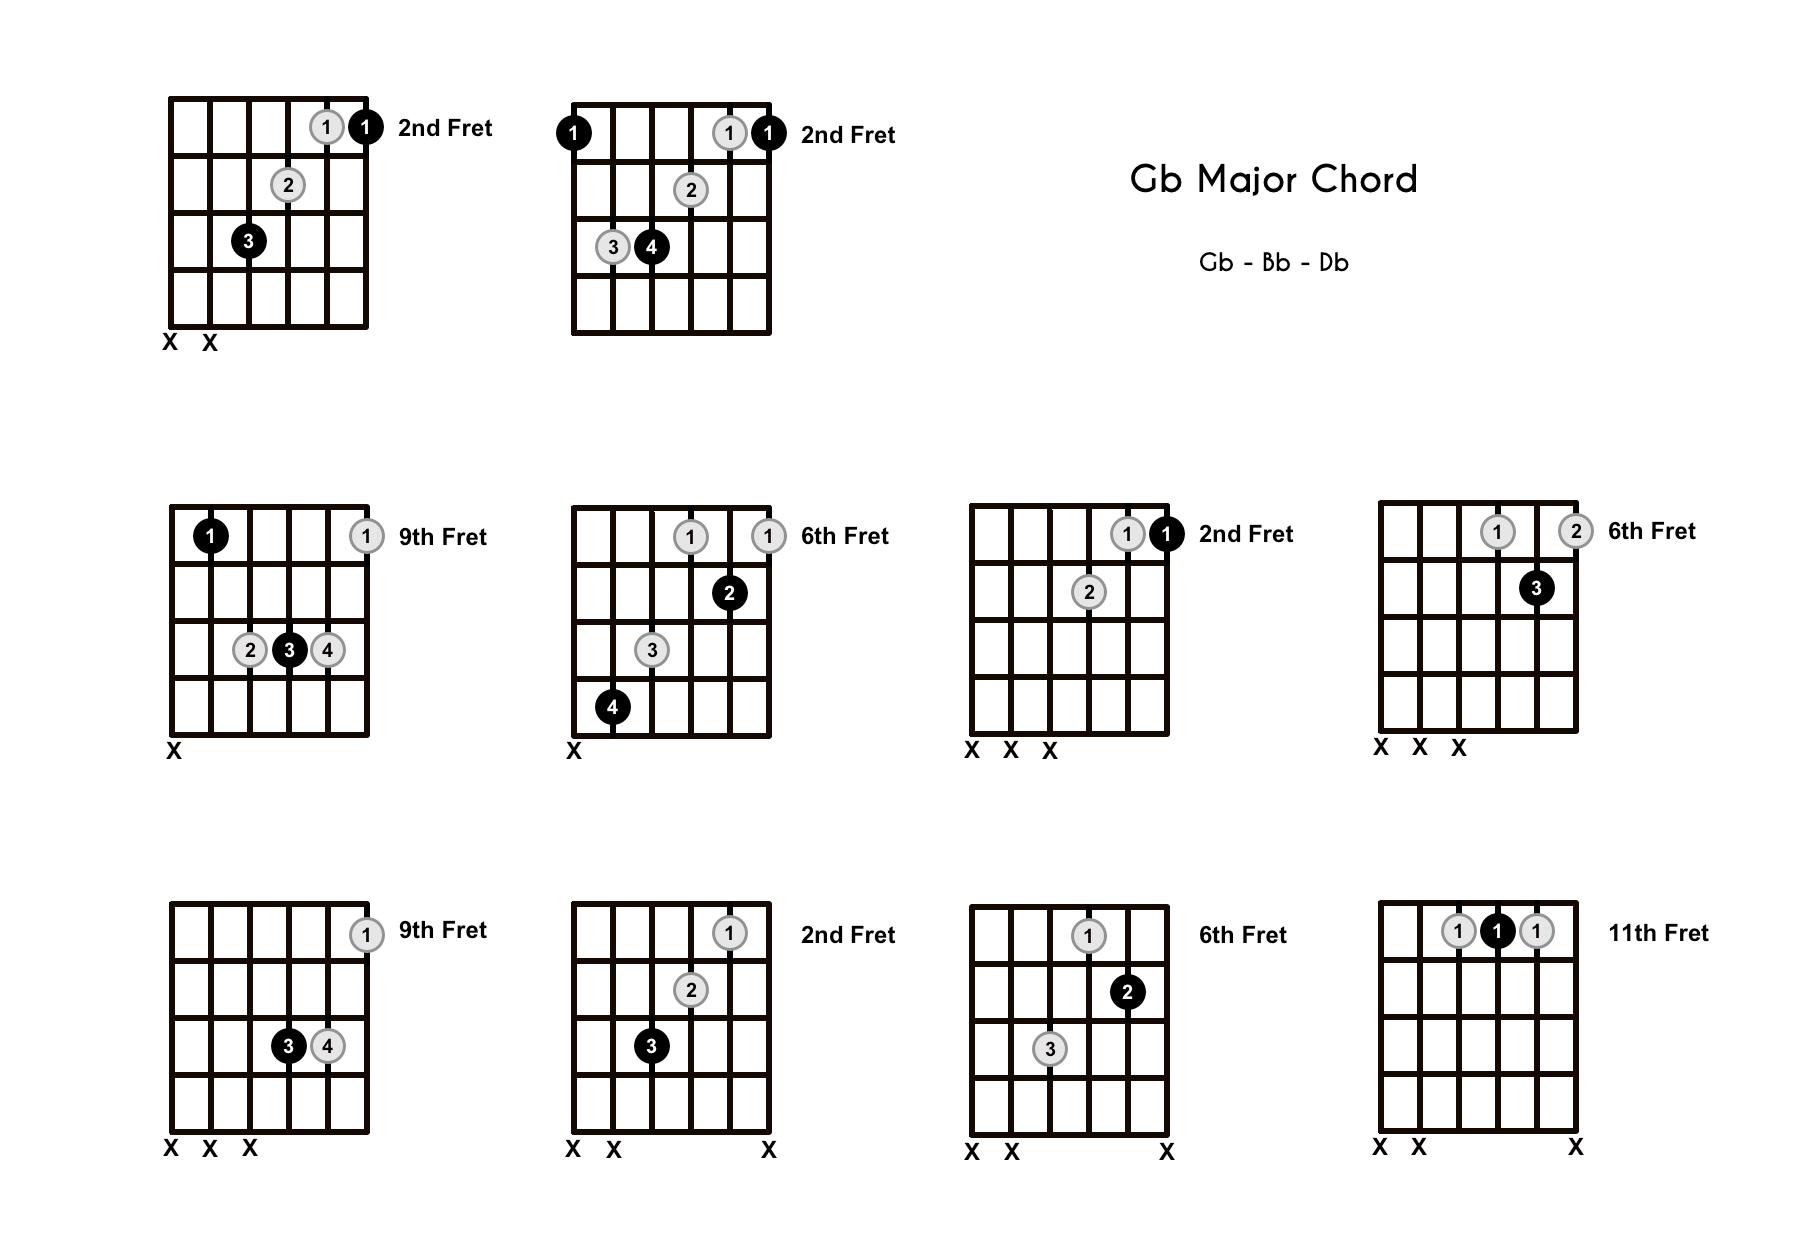 Gb Chord on the Guitar (G Flat Major) – Diagrams, Finger Positions, Theory